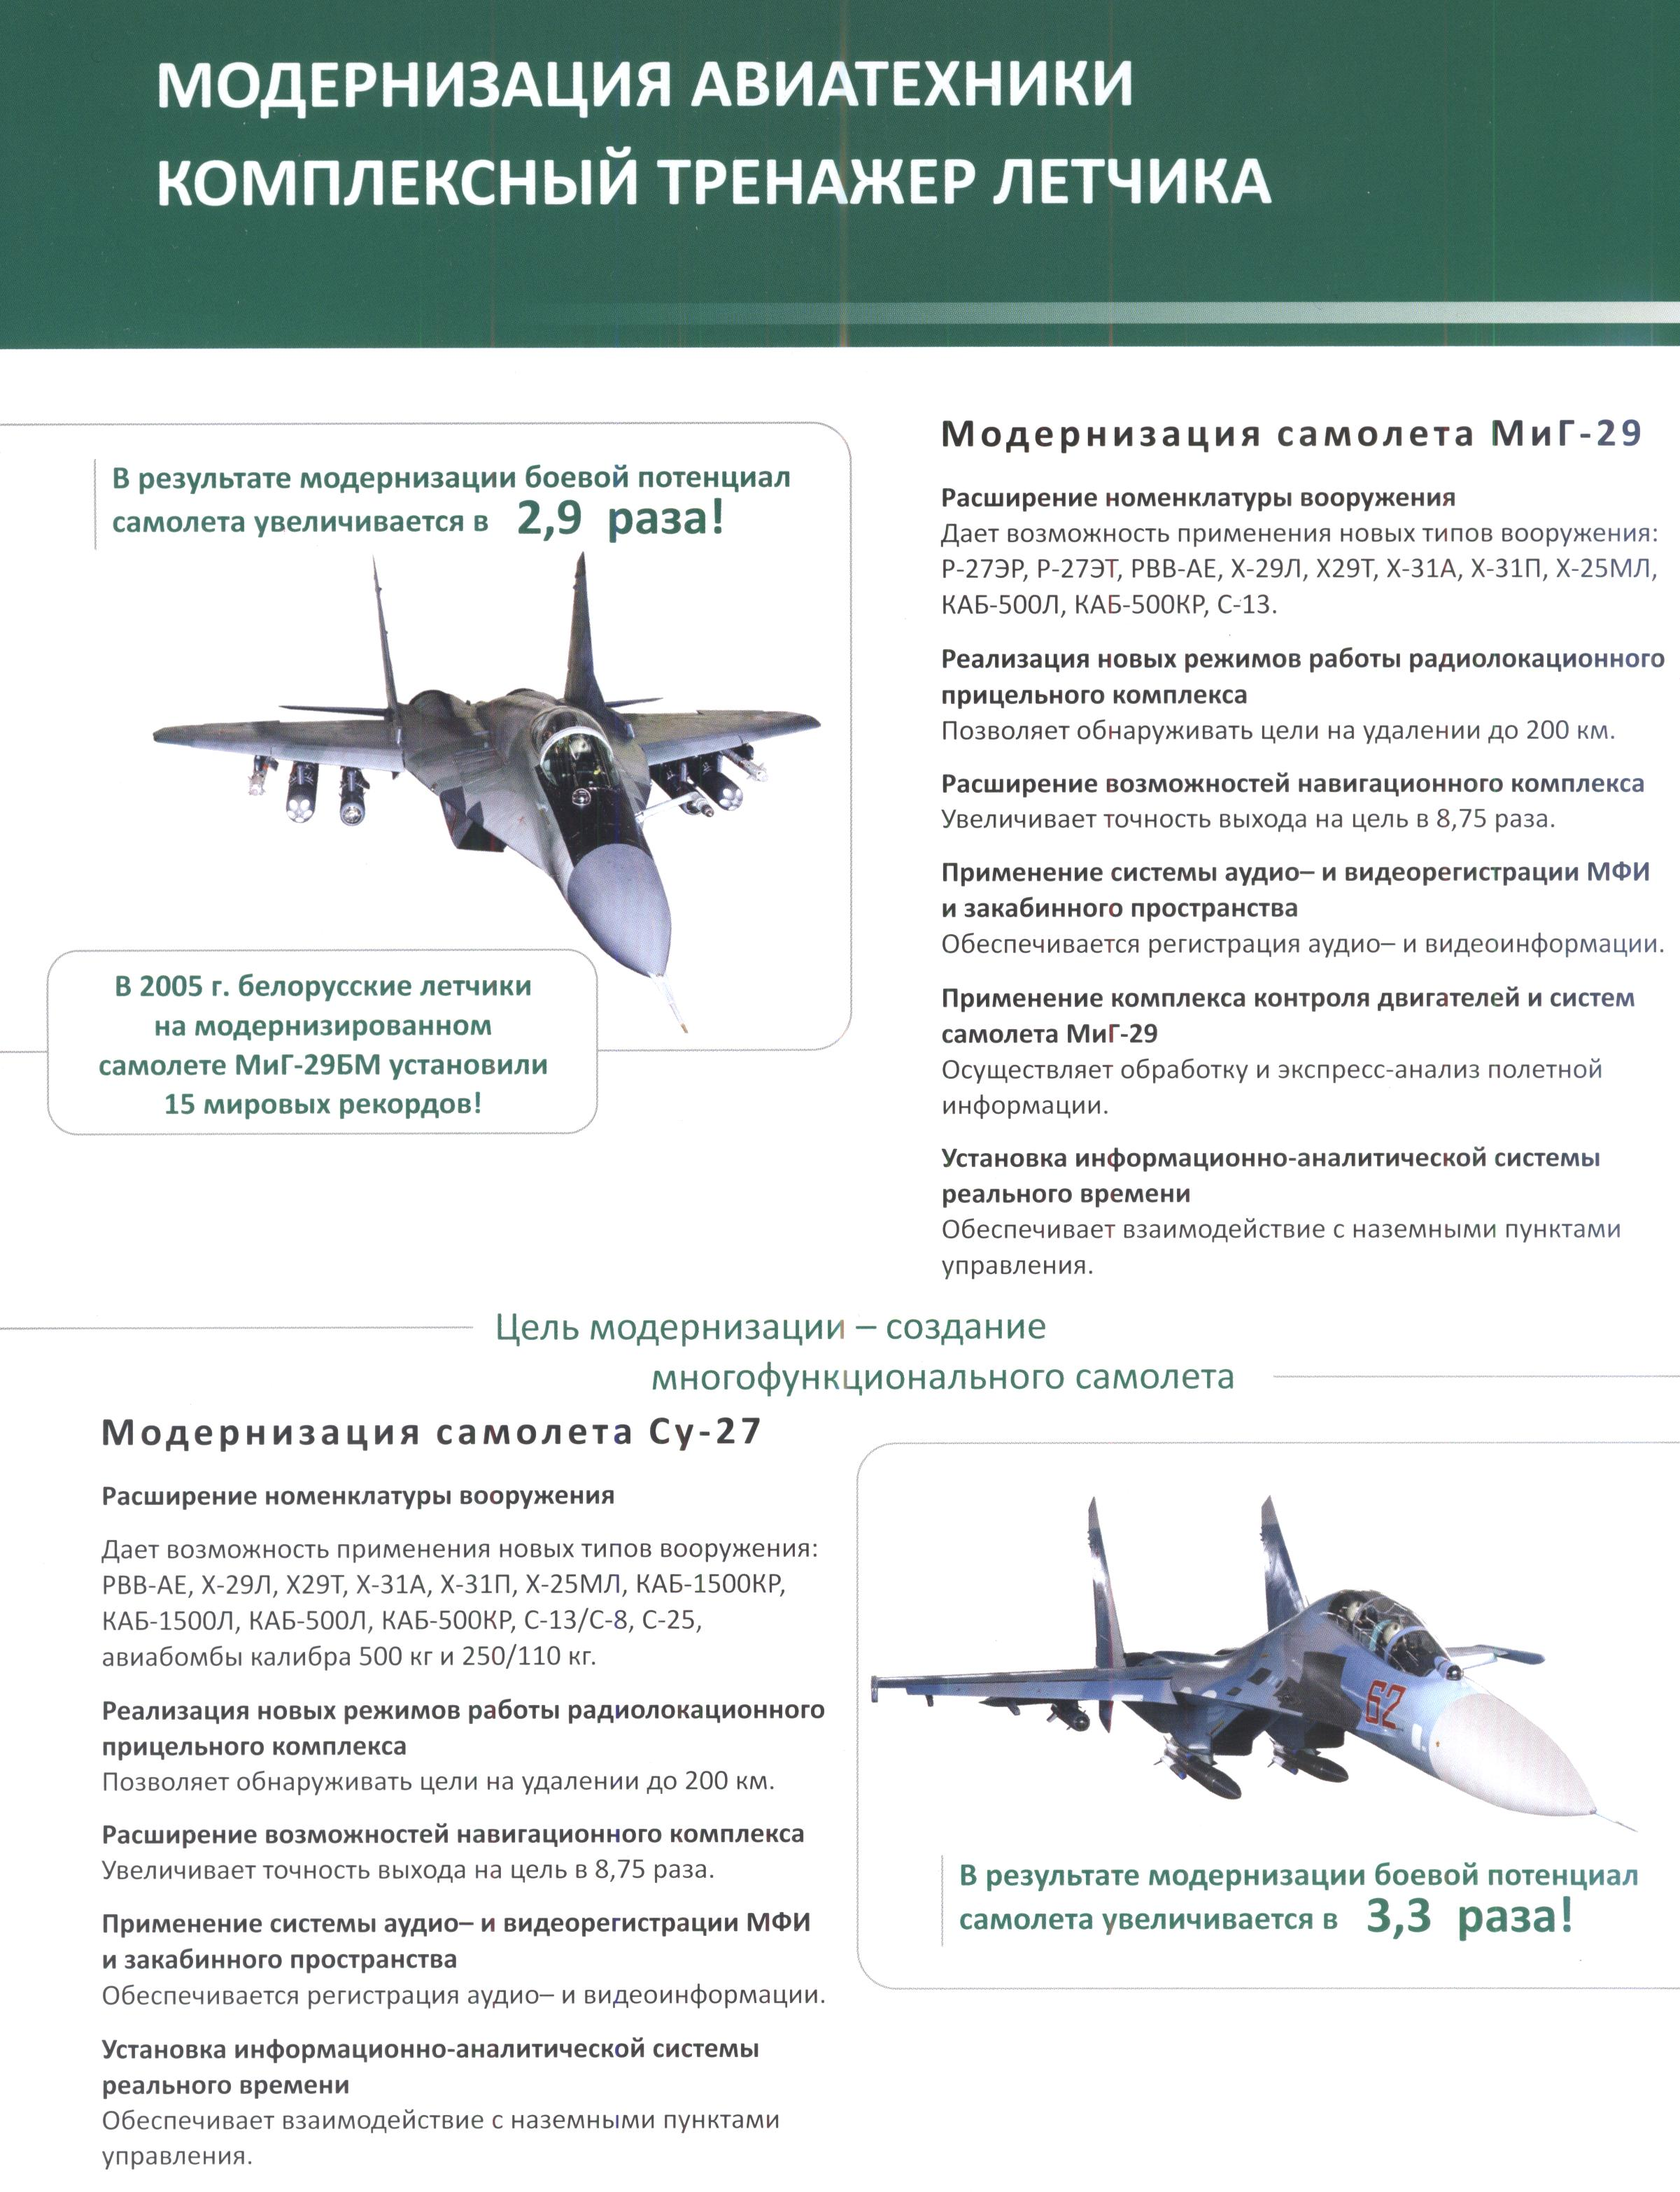 http://militaryrussia.ru/forum/download/file.php?id=19660&sid=54a1bccbe0d3b89a027156f927d9f040&mode=view